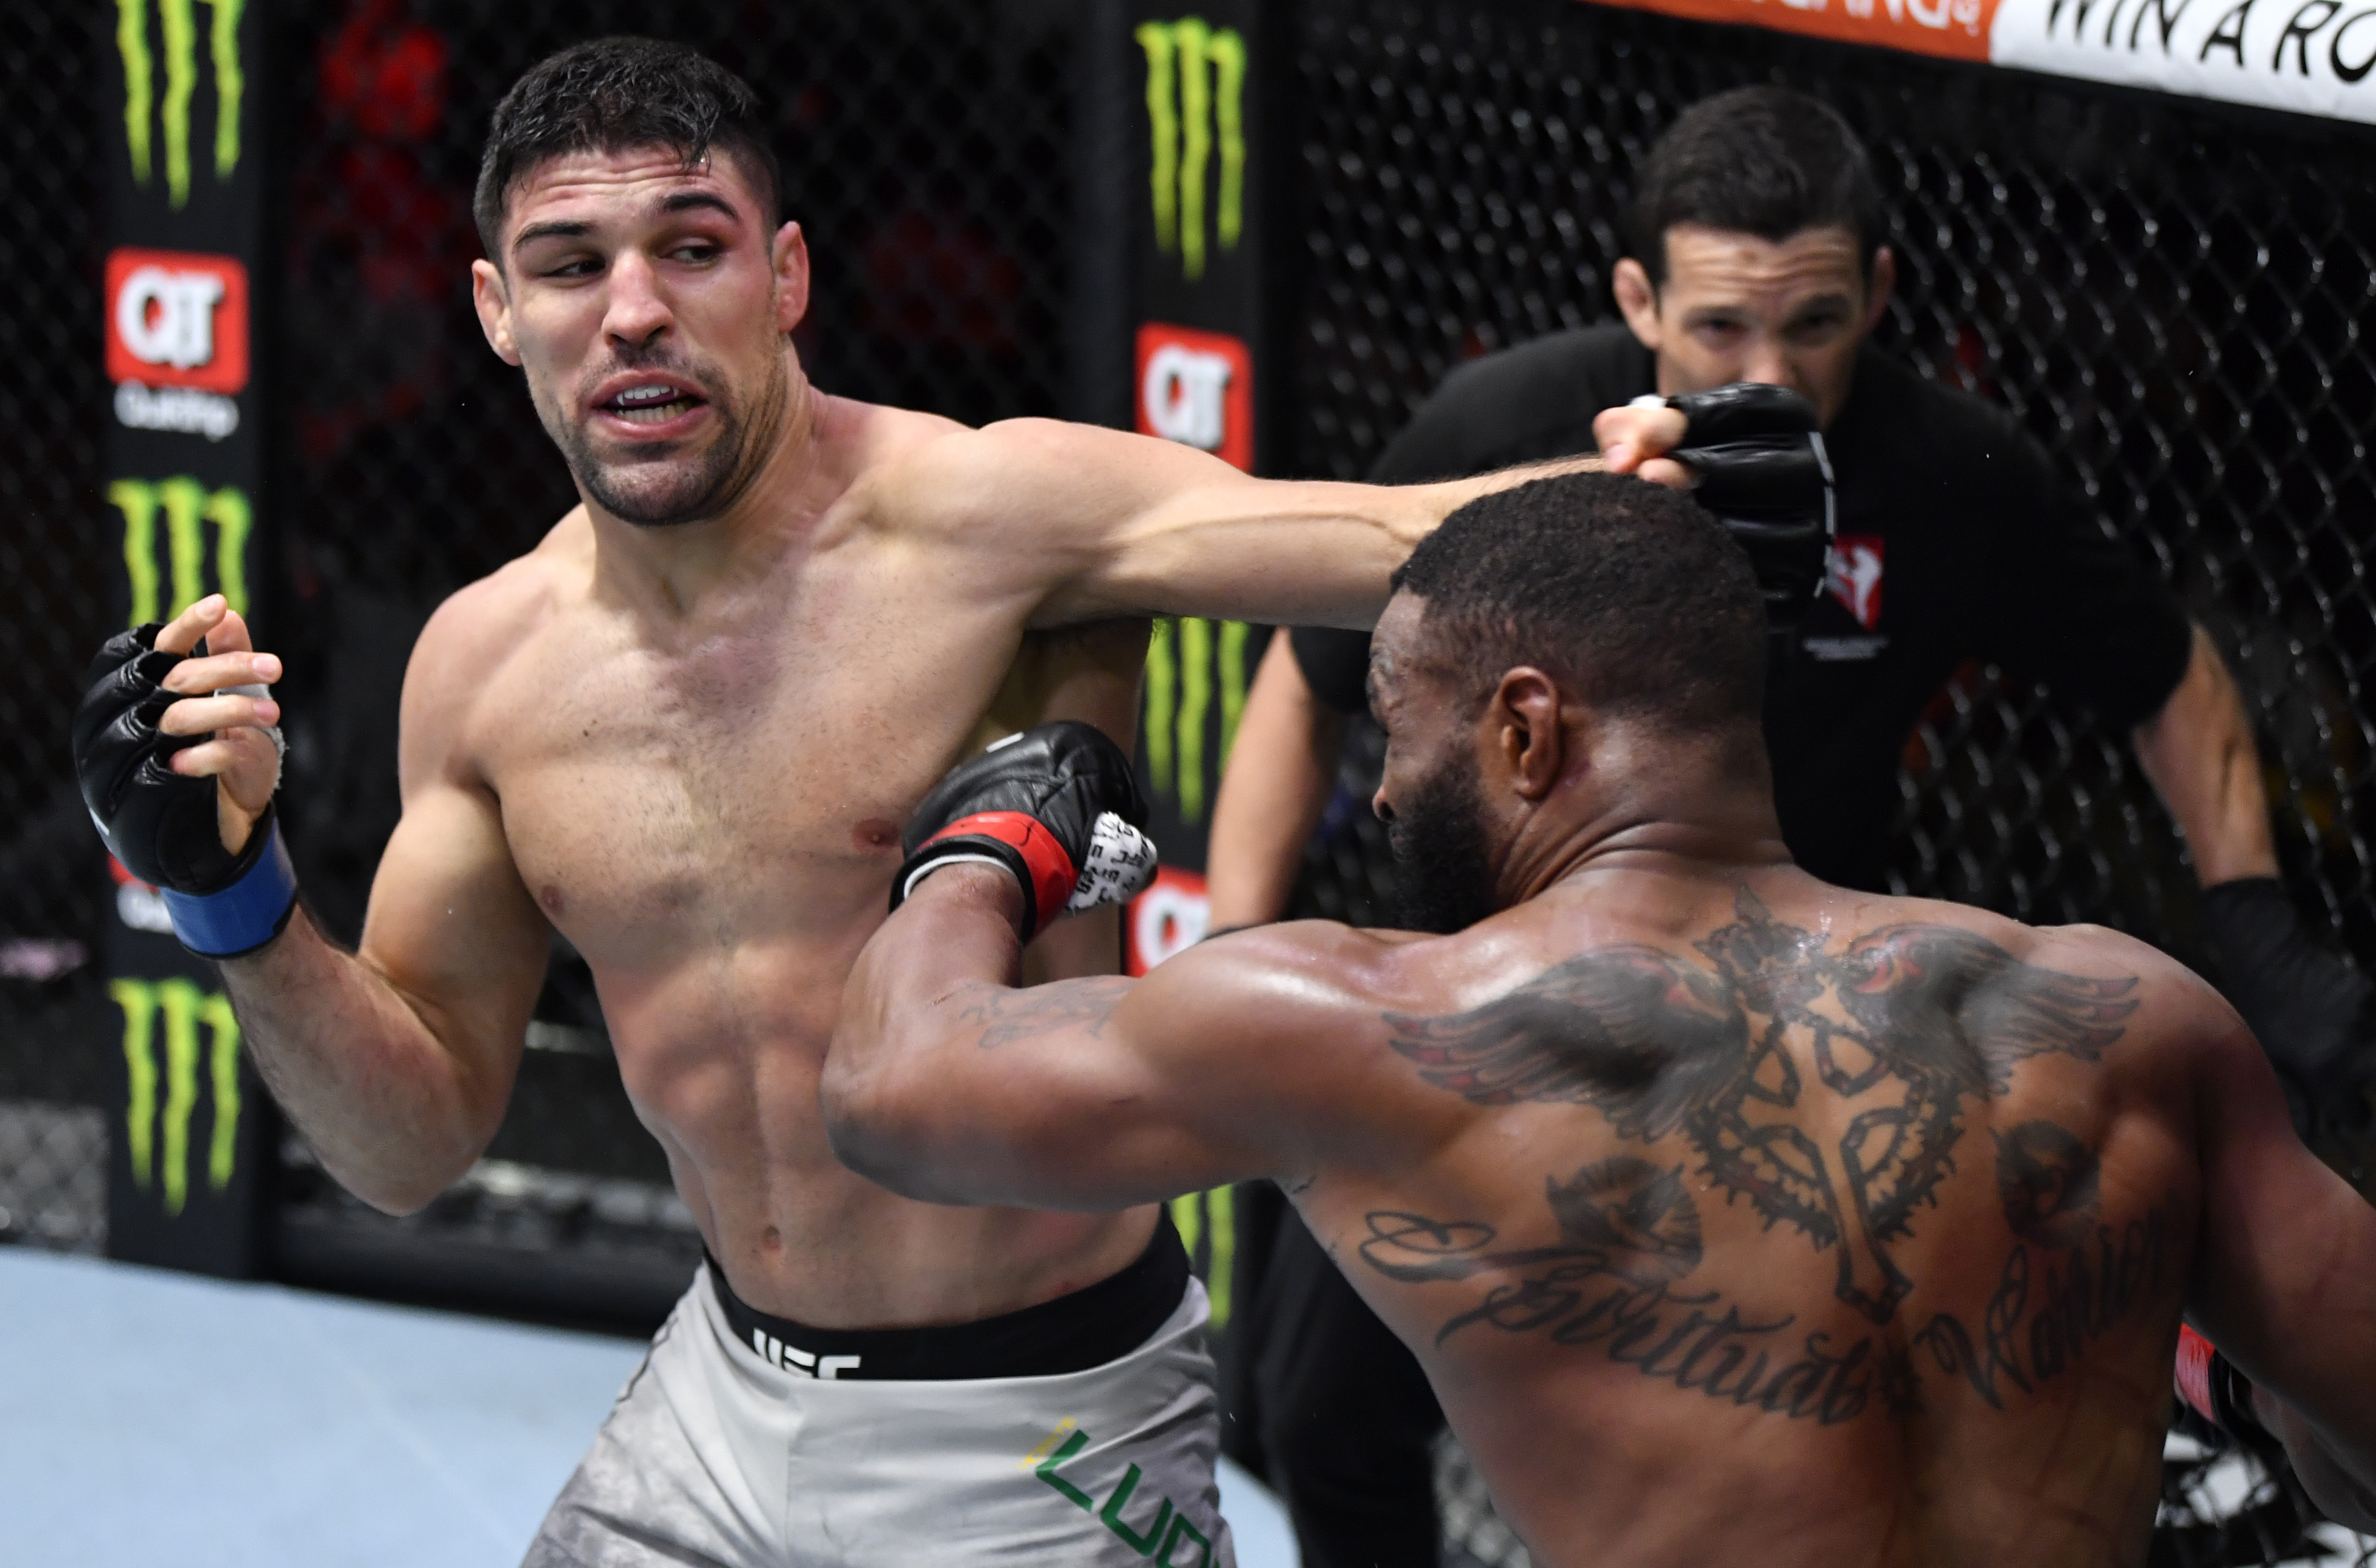 In this handout image provided by UFC, (L-R) Vicente Luque punches Tyron Woodley in their welterweight fight during the UFC 260 event at UFC APEX on March 27, 2021 in Las Vegas, Nevada.